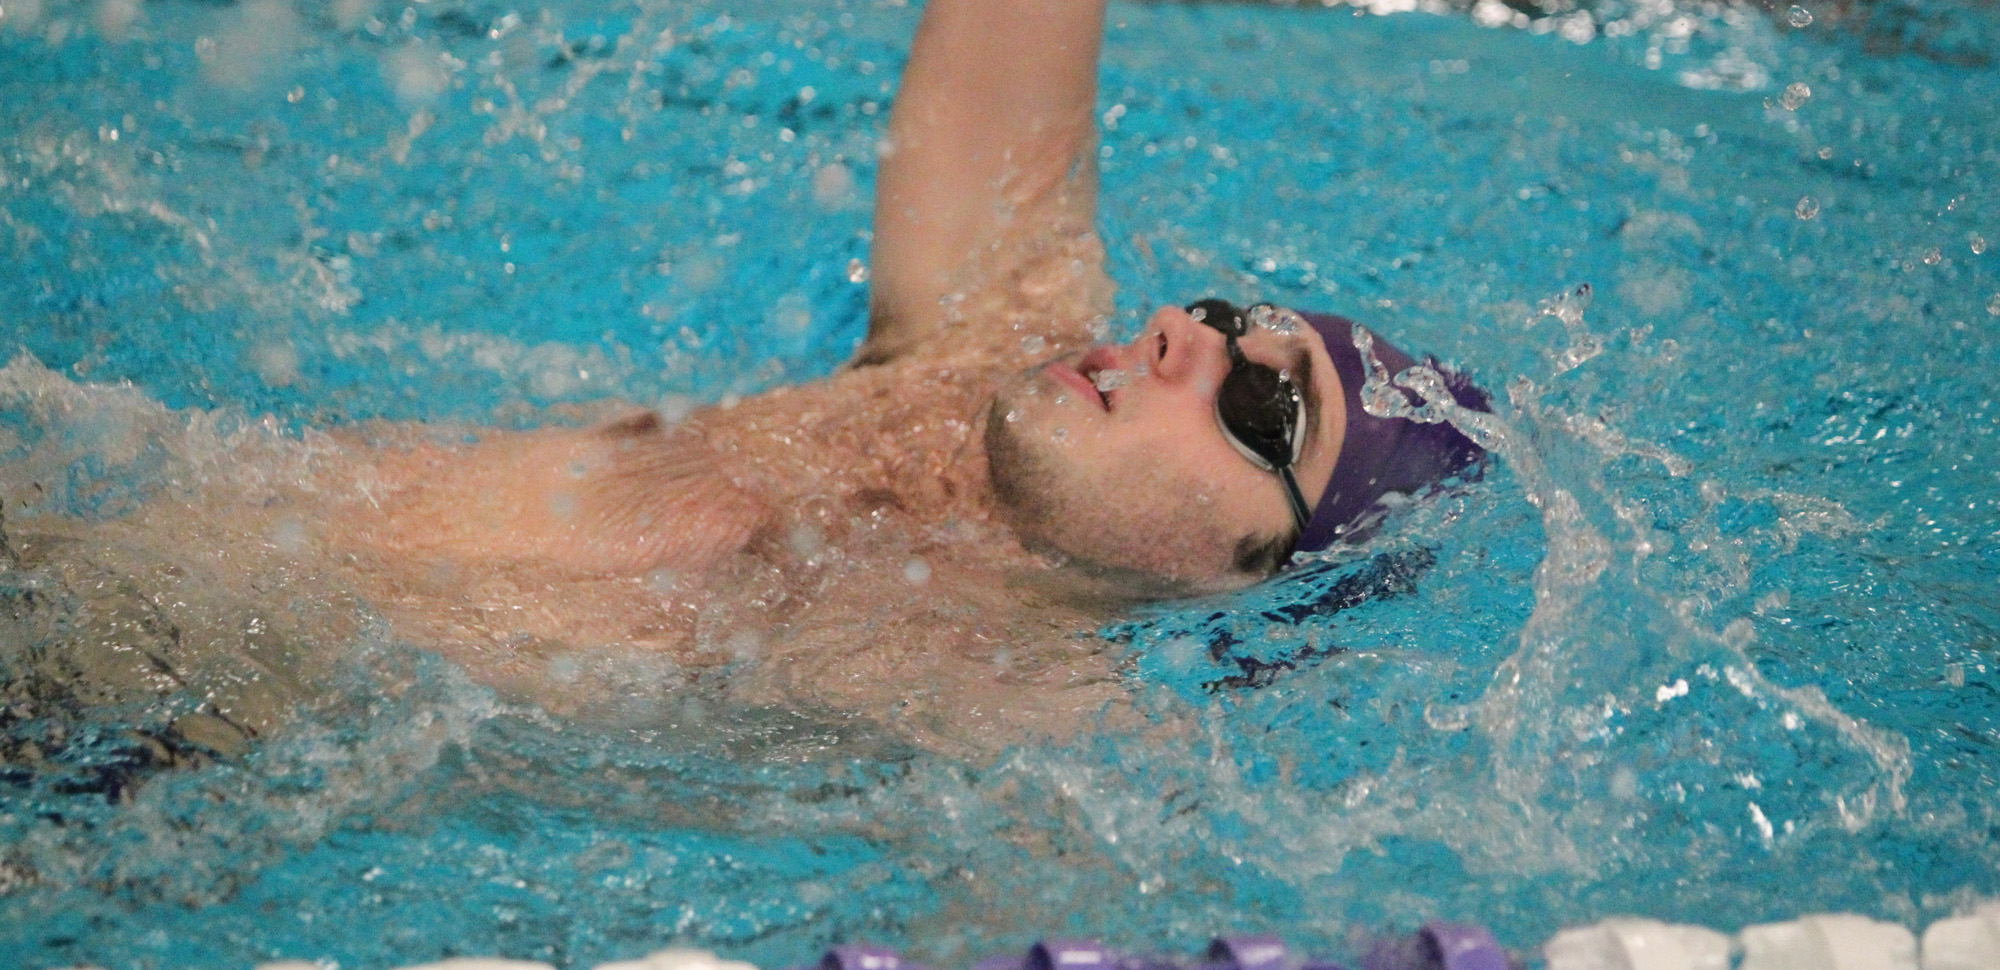 Junior John Fimmano was a Landmark Conference Champion in the 200-butterfly last season. He and the Royals kick-off their 2019-20 campaign on Sunday, Oct. 20 at Marywood.  (Photo by Timothy R. Dougherty / doubleeaglephotography.com)